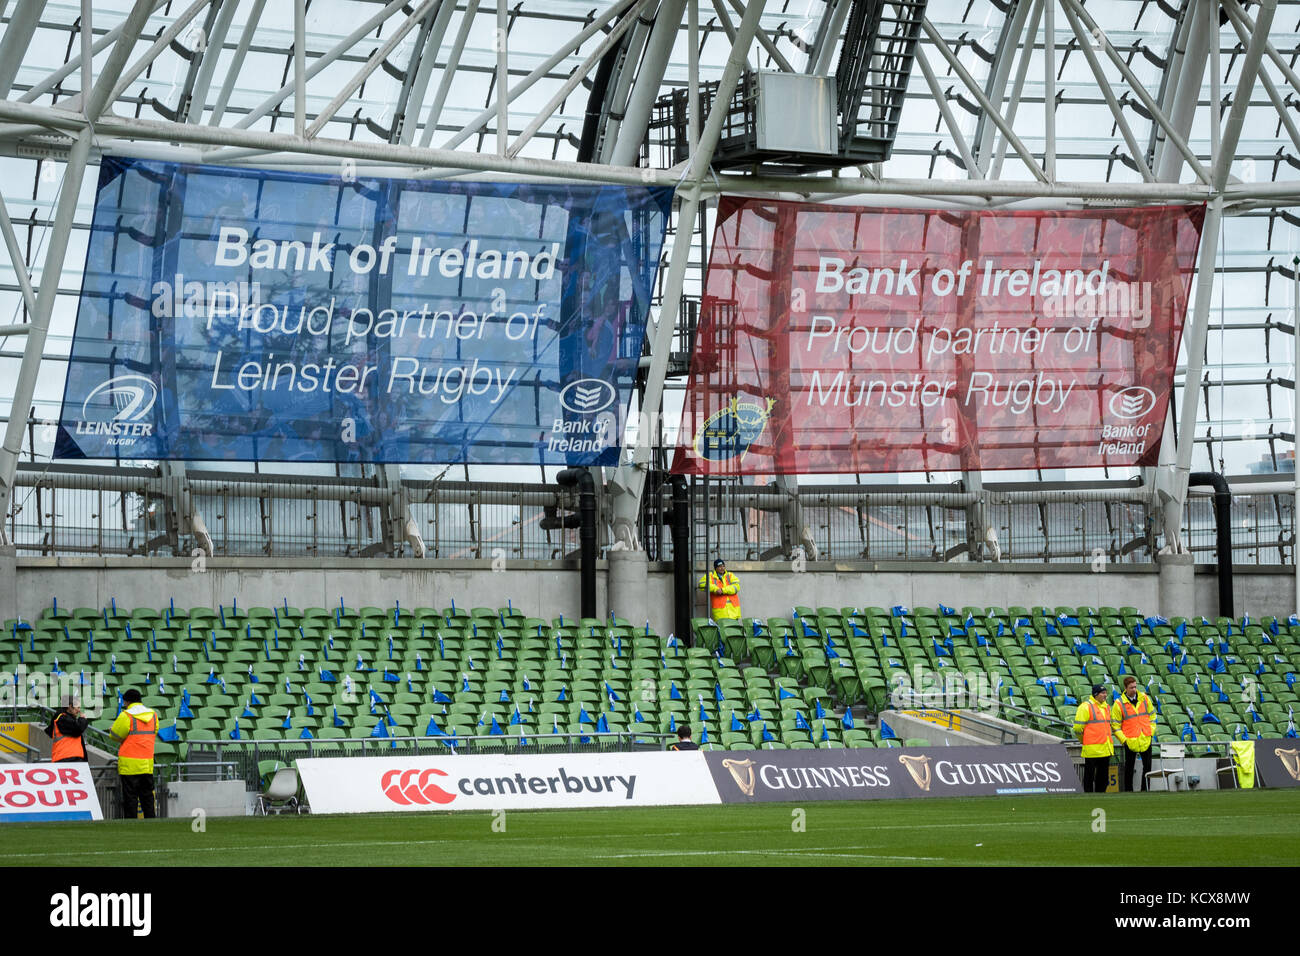 Bank of Ireland sponsorship of Munster and Leinster rugby on show at the Aviva Stadium, Dublin, Ireland - Stock Image